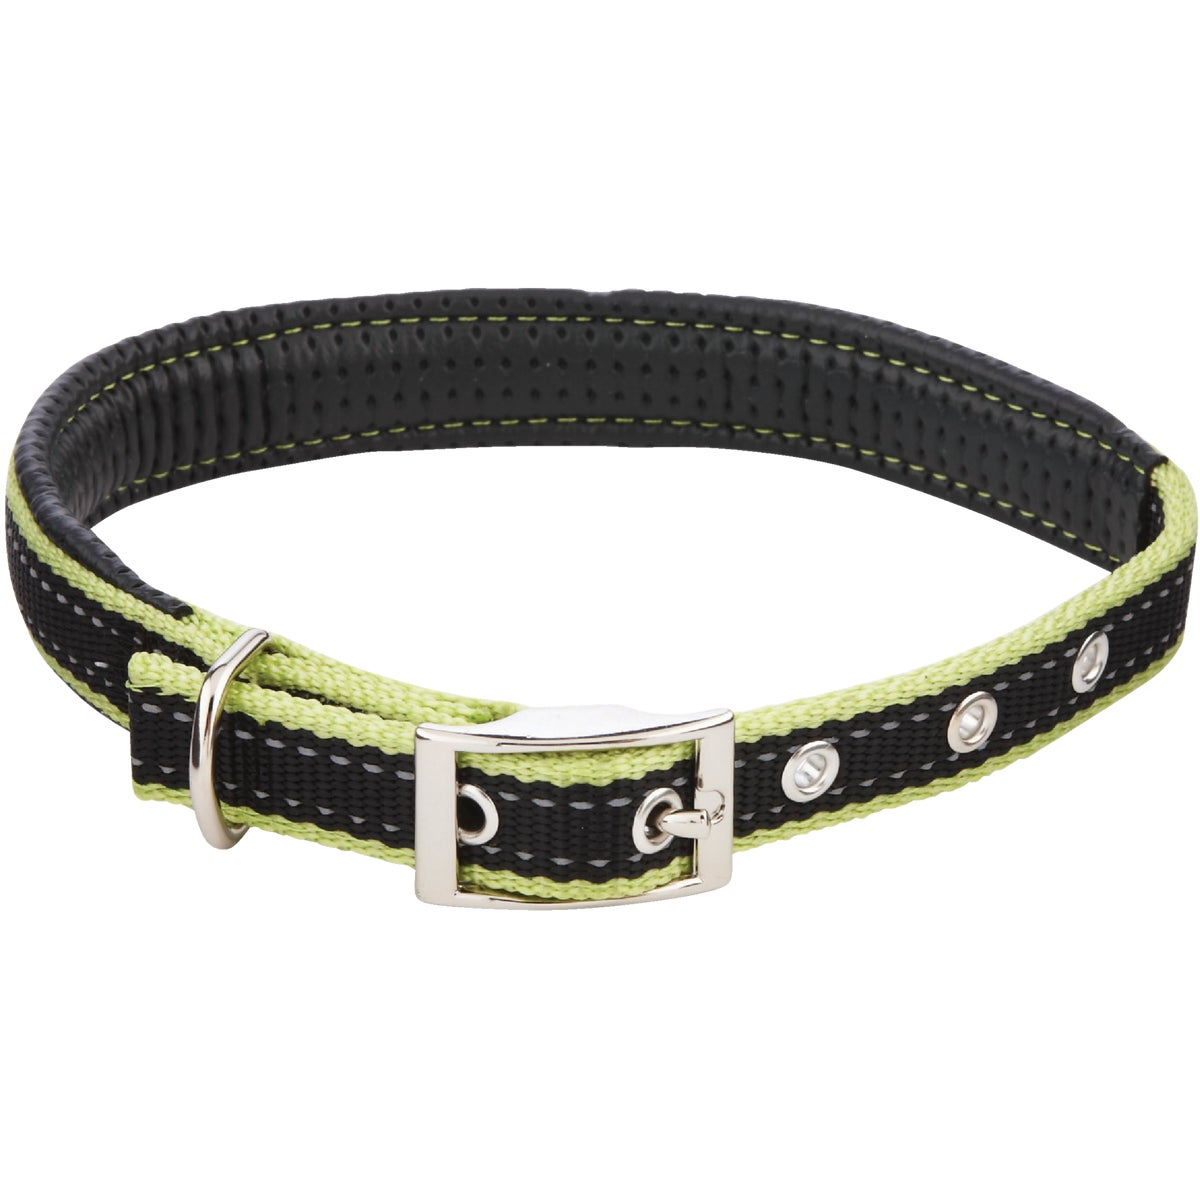 MD REFLECTECH DOG COLLAR